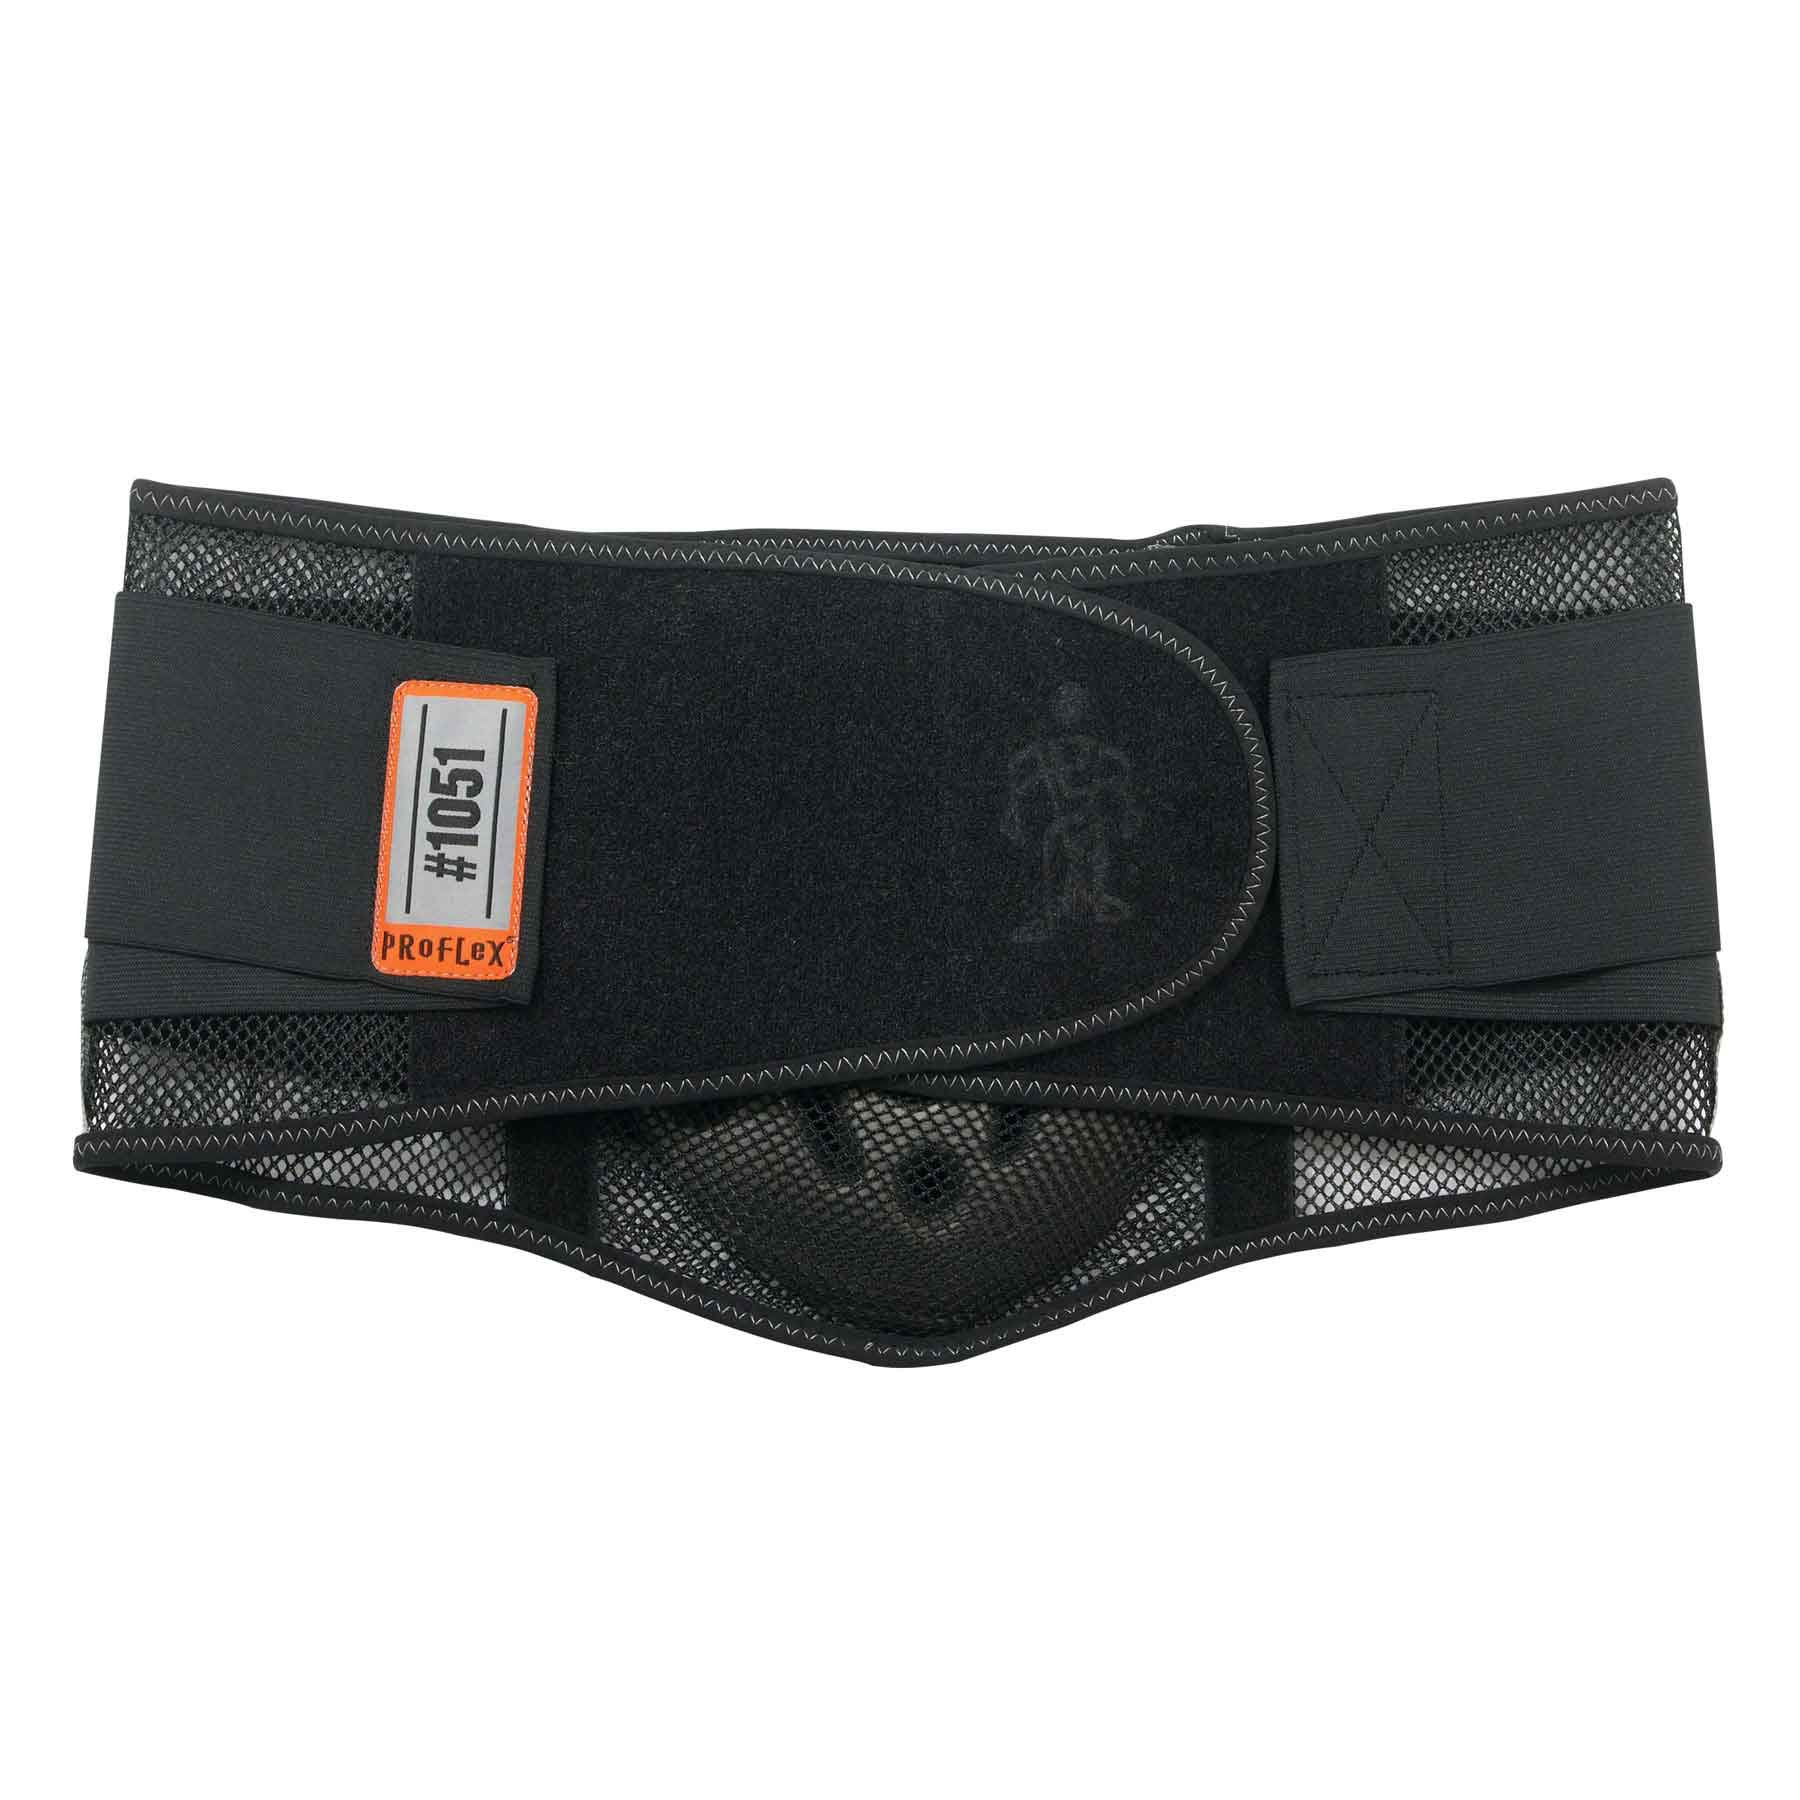 Ergodyne - 1051 L Black Mesh Back Support w/Lumbar Pad